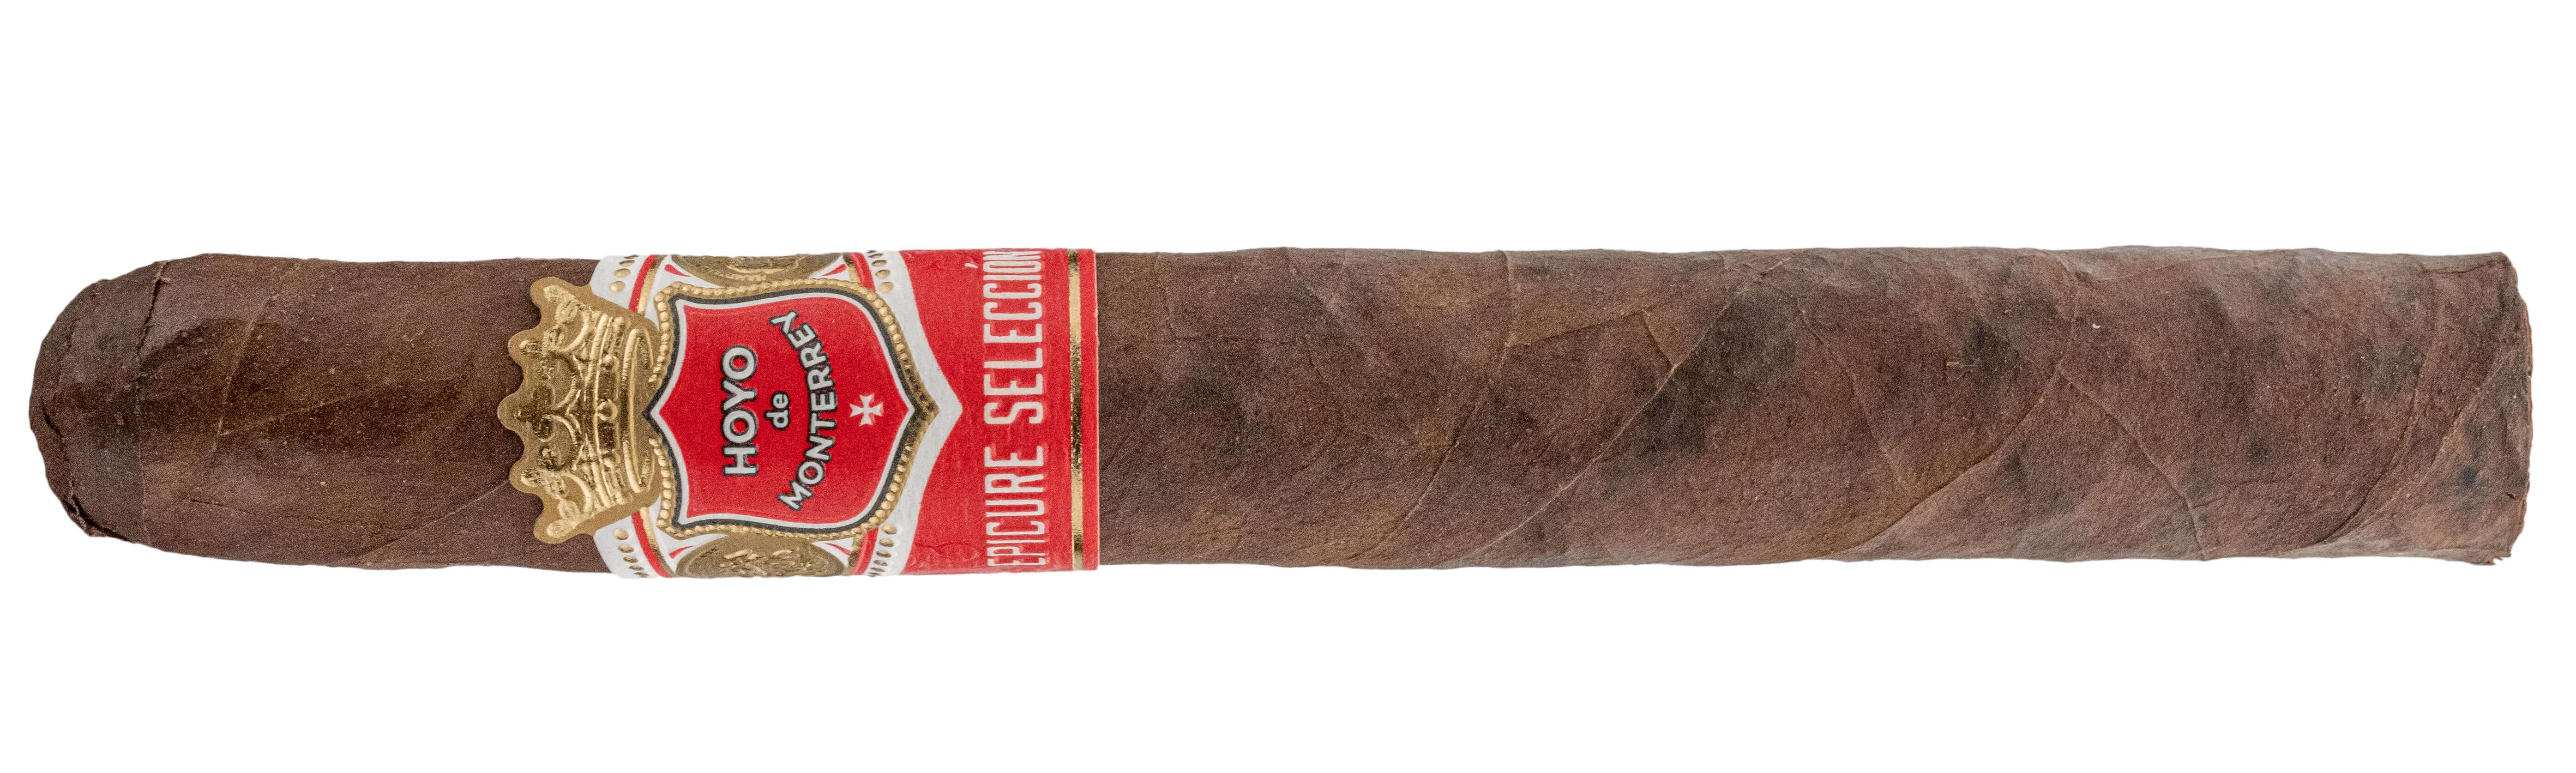 Blind Cigar Review: Hoyo de Monterrey | Epicure Selection No 1.